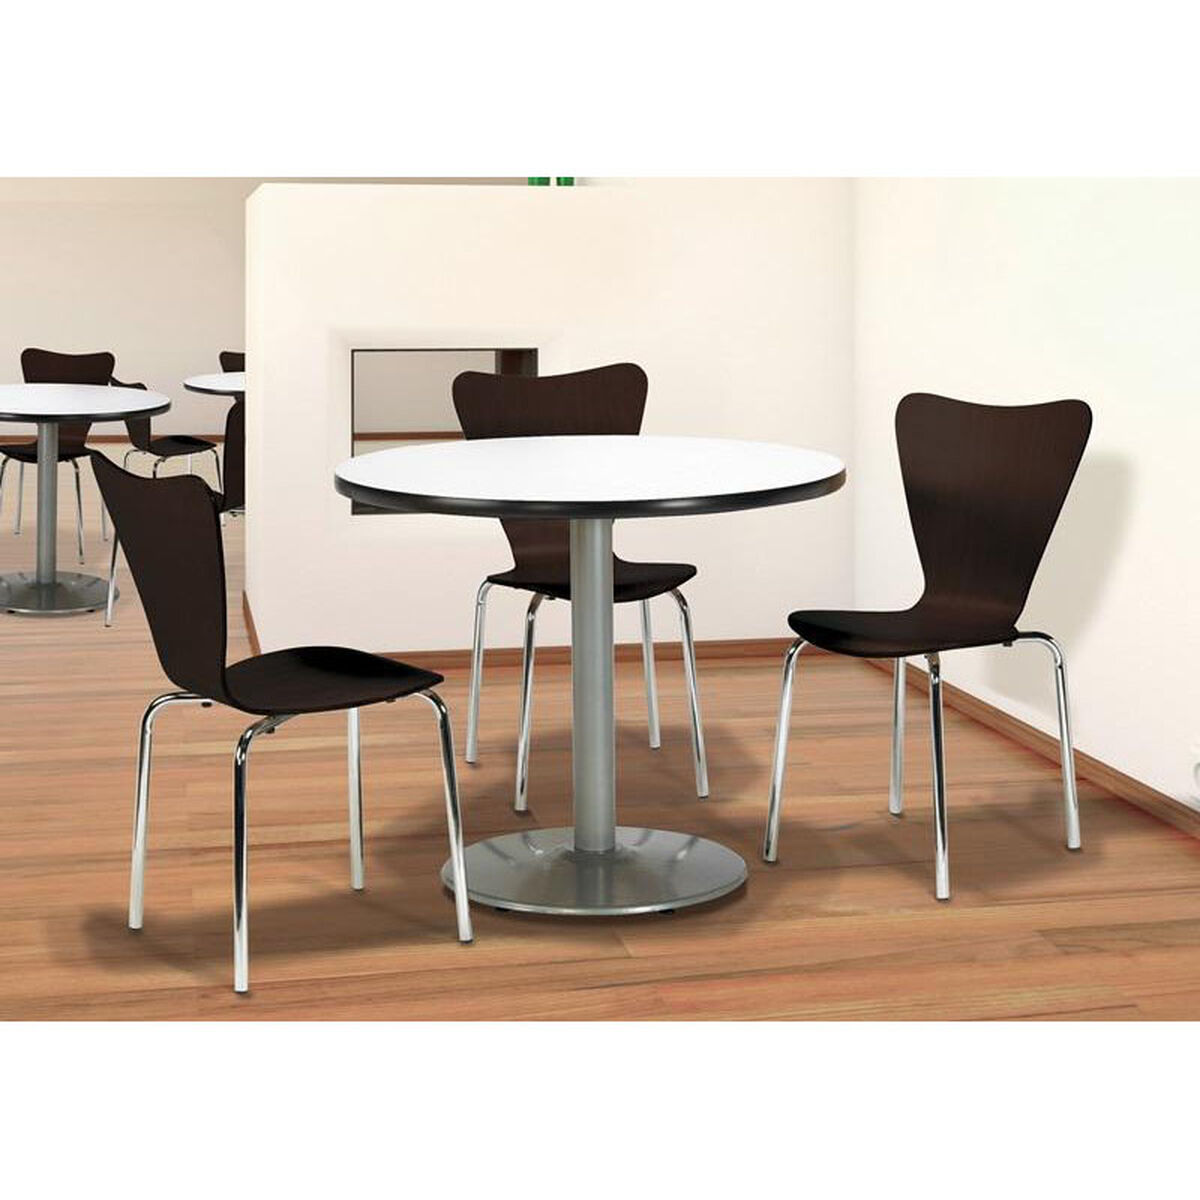 3800 series bentwood stacking armless cafe chair with chrome frame inset 1. Black Bedroom Furniture Sets. Home Design Ideas